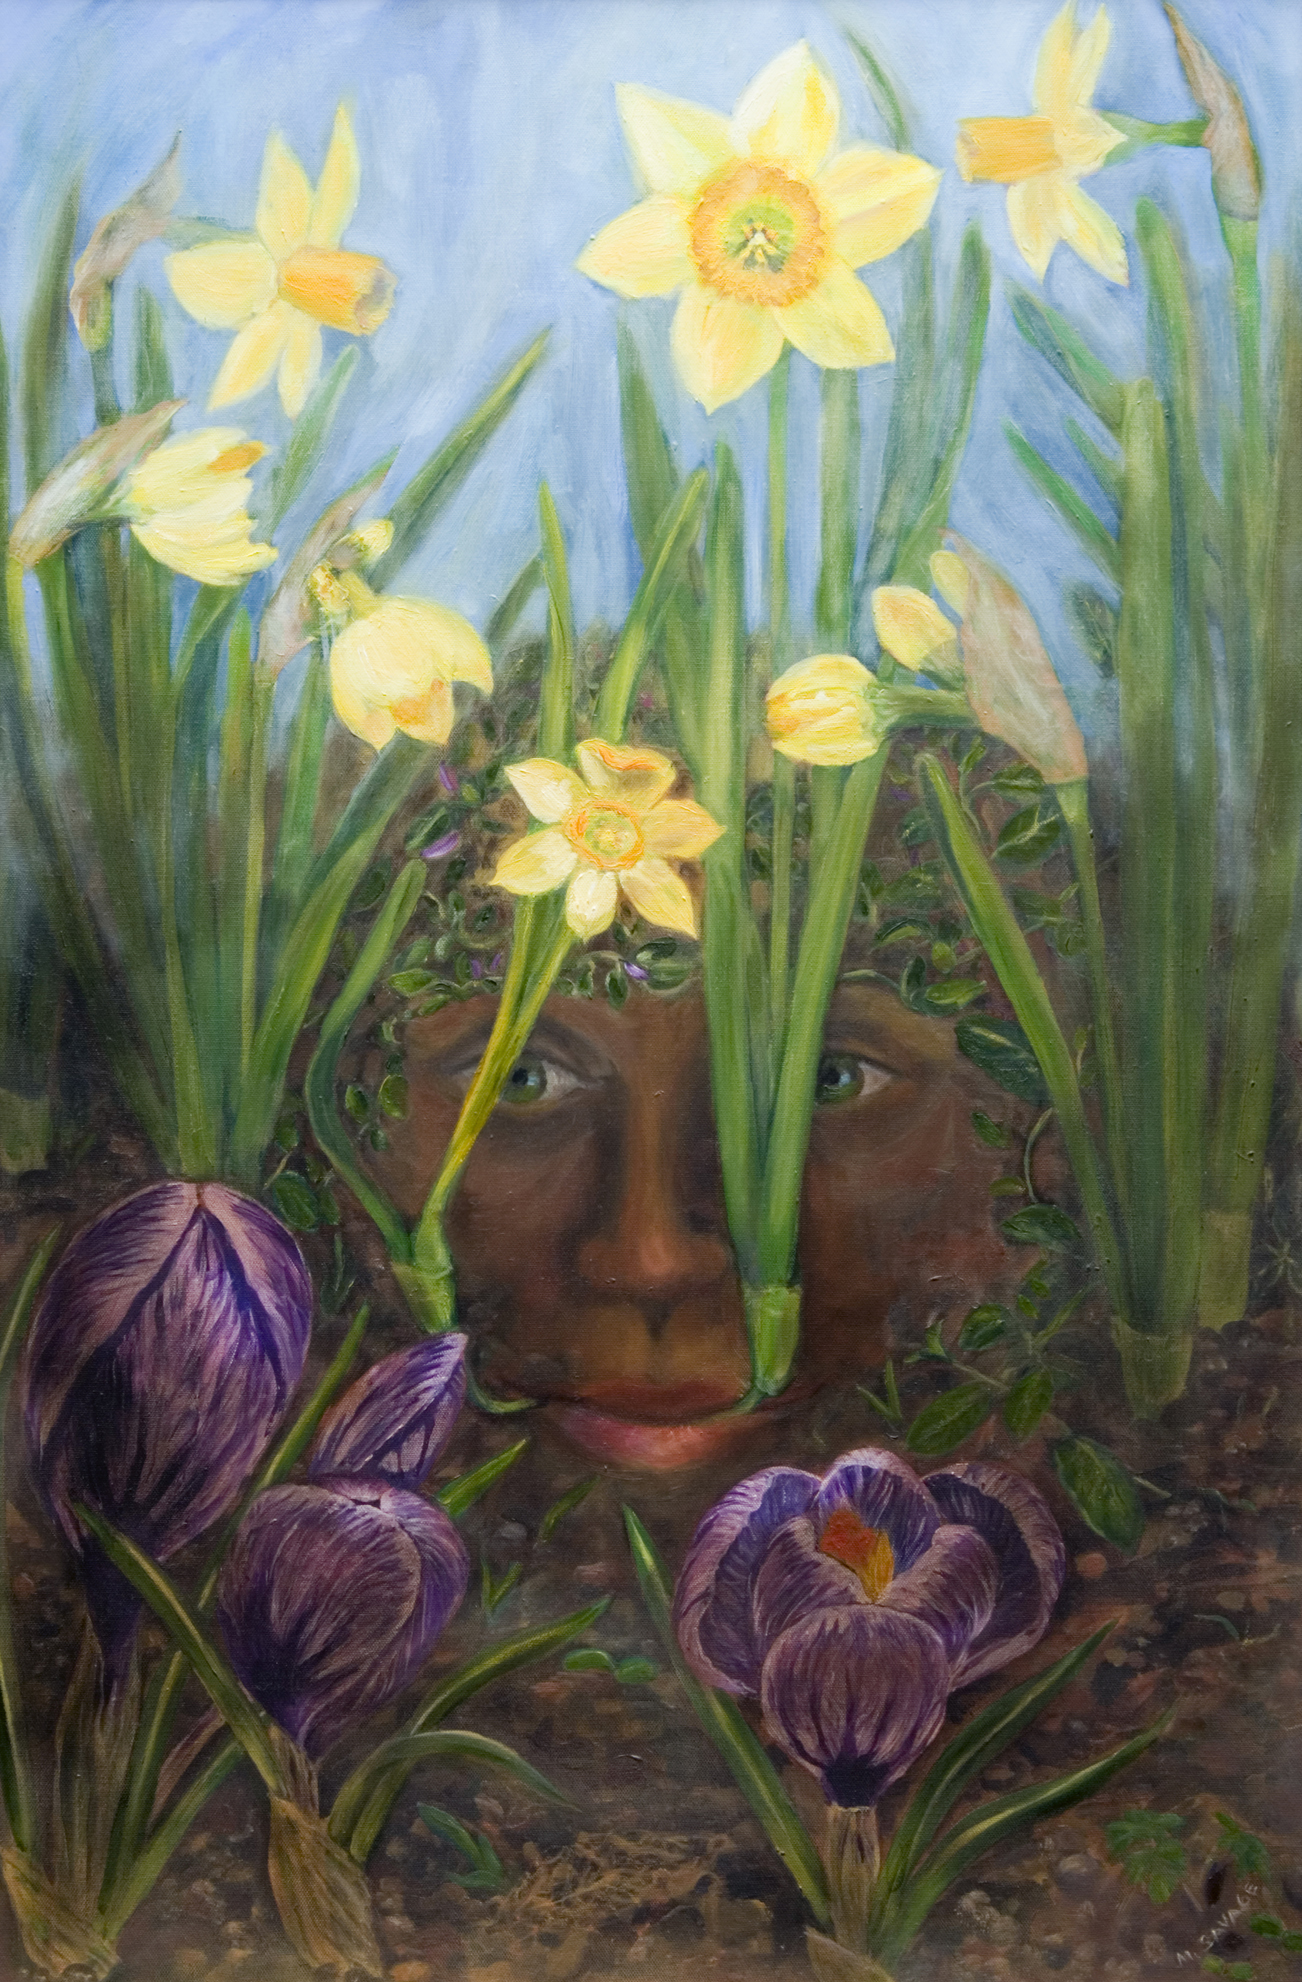 Earth Mother Spring